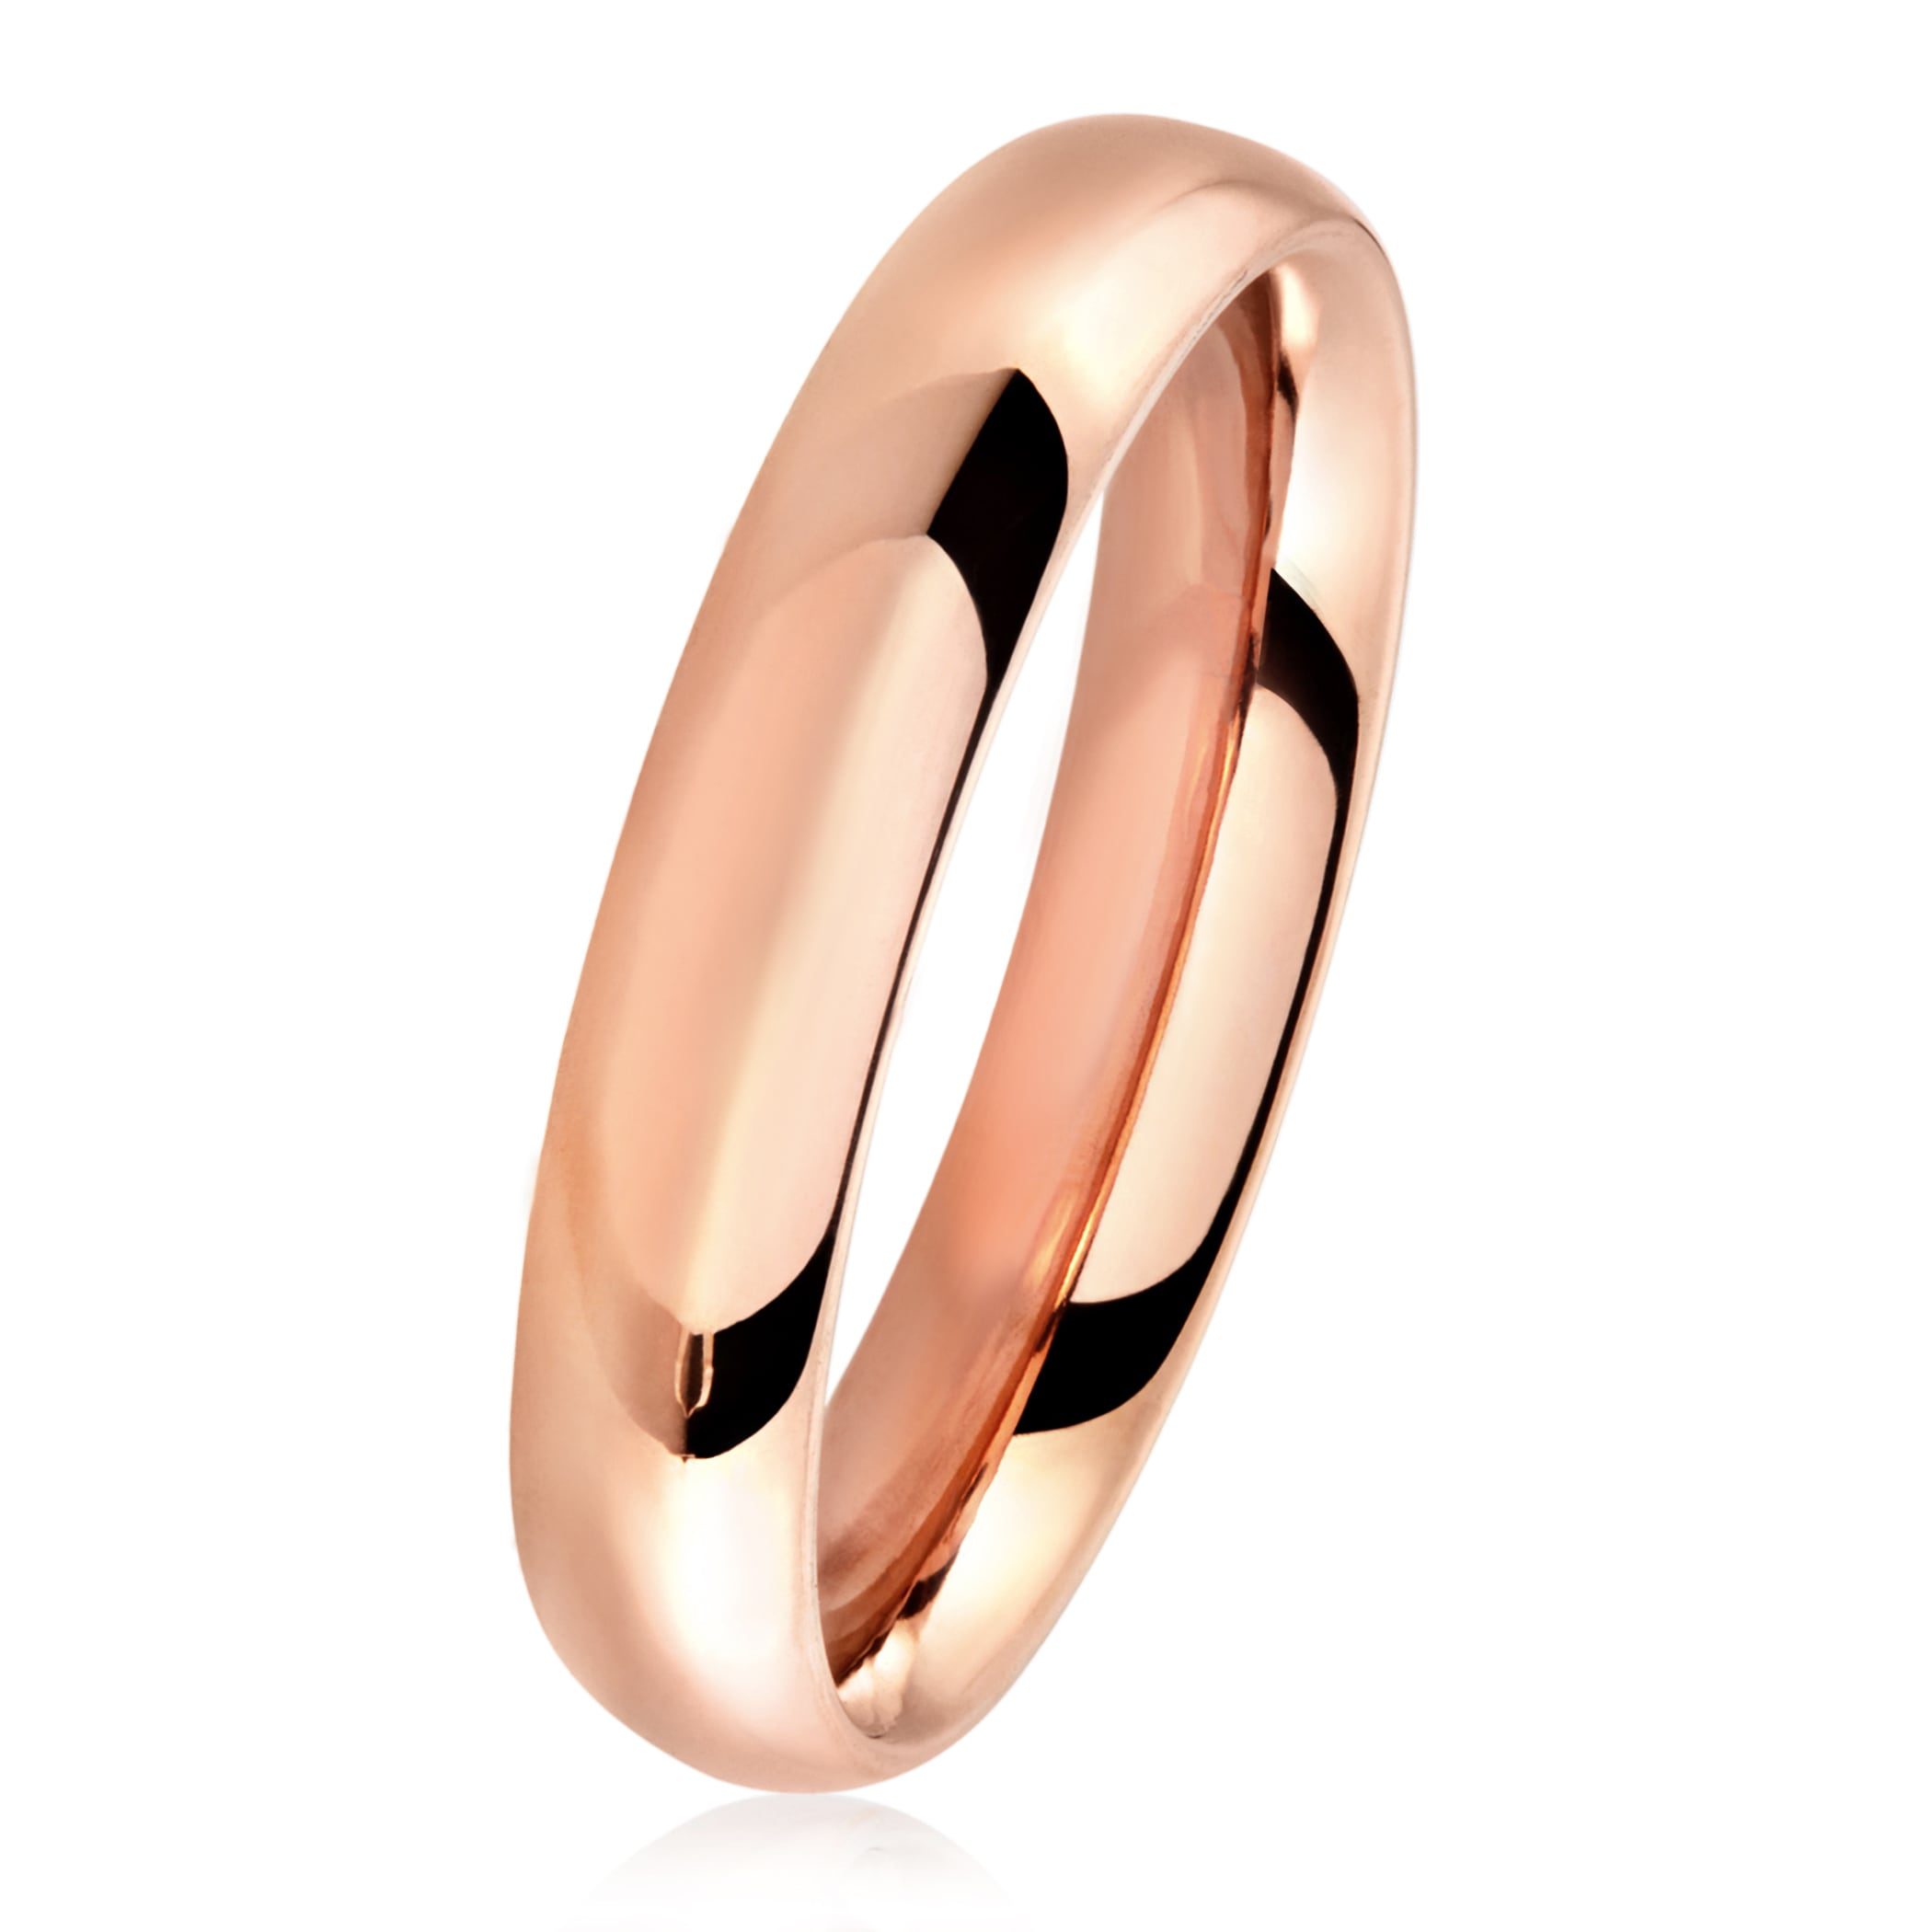 Rose Gold Polished Stainless Steel Domed Comfort Fit Wedding Band Ring 4mm Wide On Free Shipping Orders Over 45